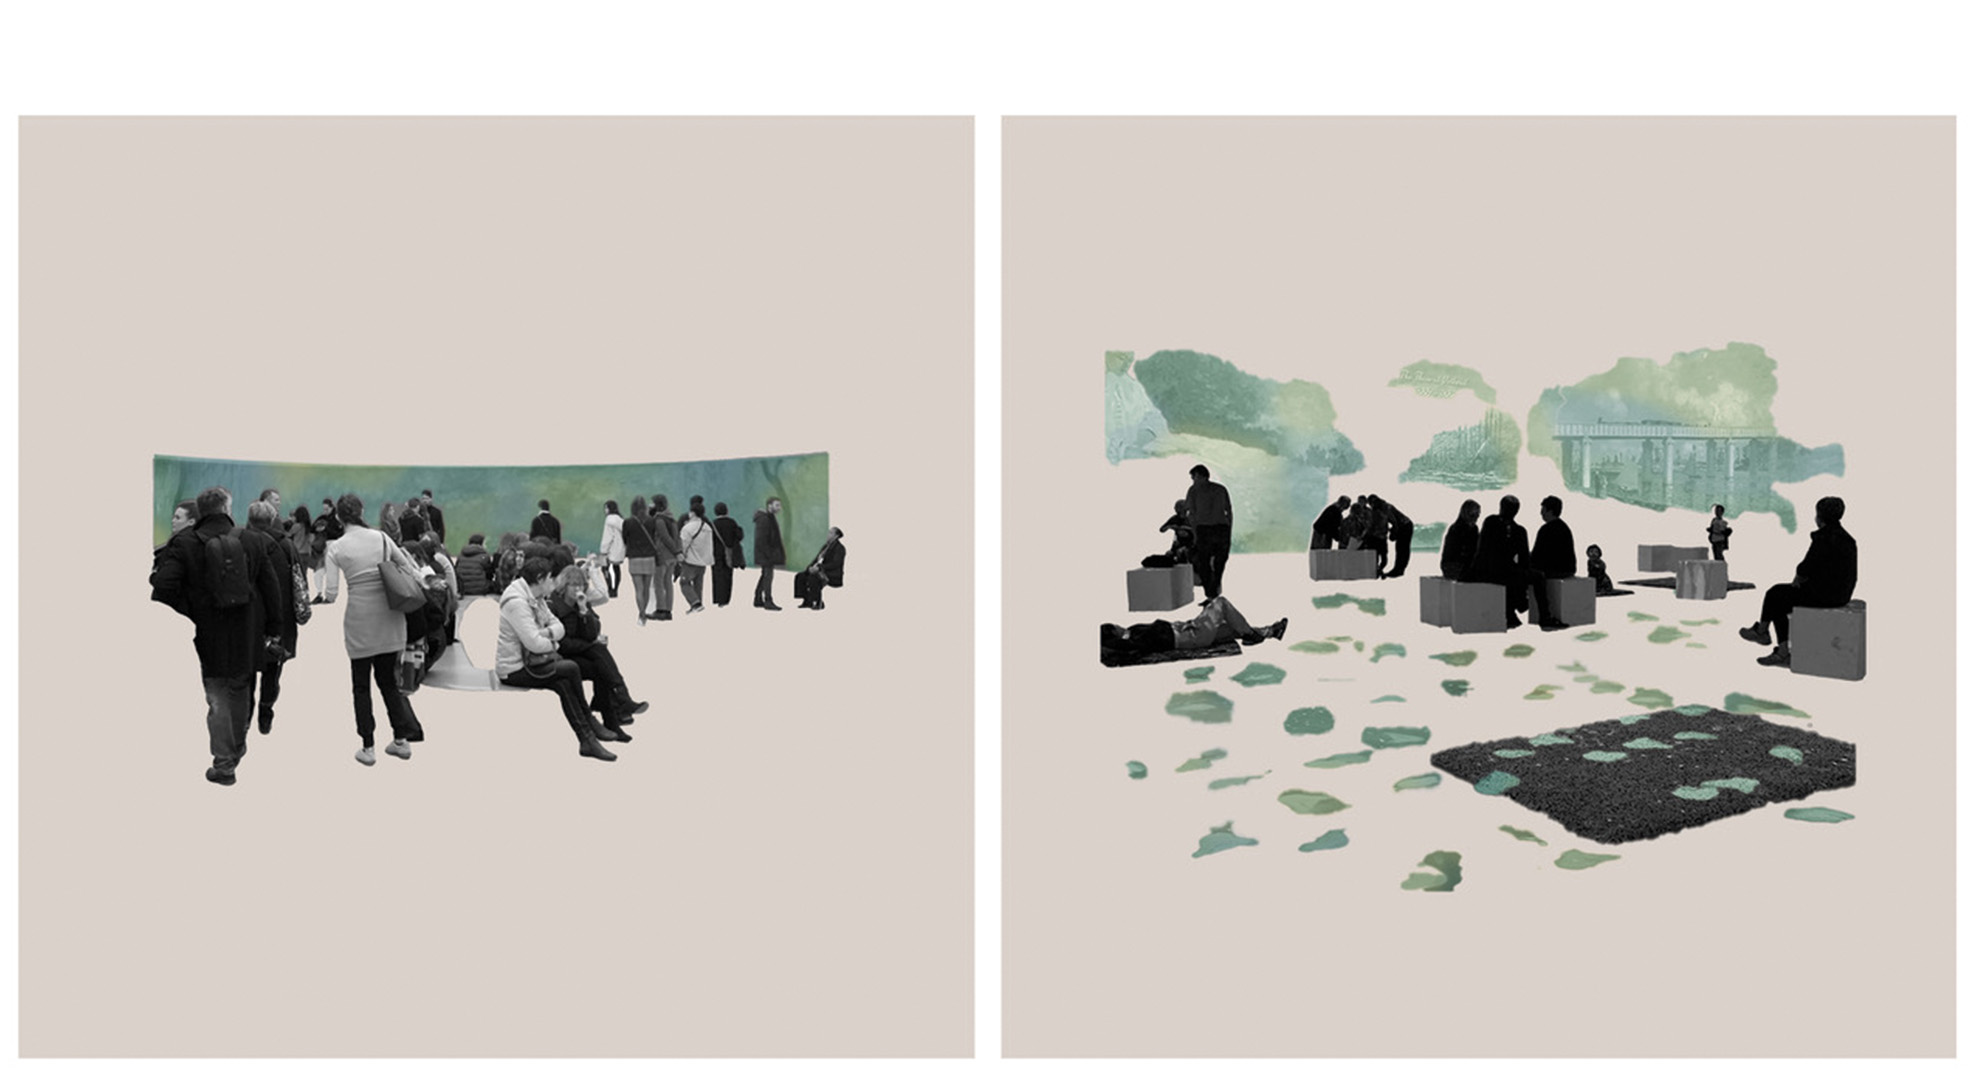 Traditional exhibition design versus digital experience of the same artwork.